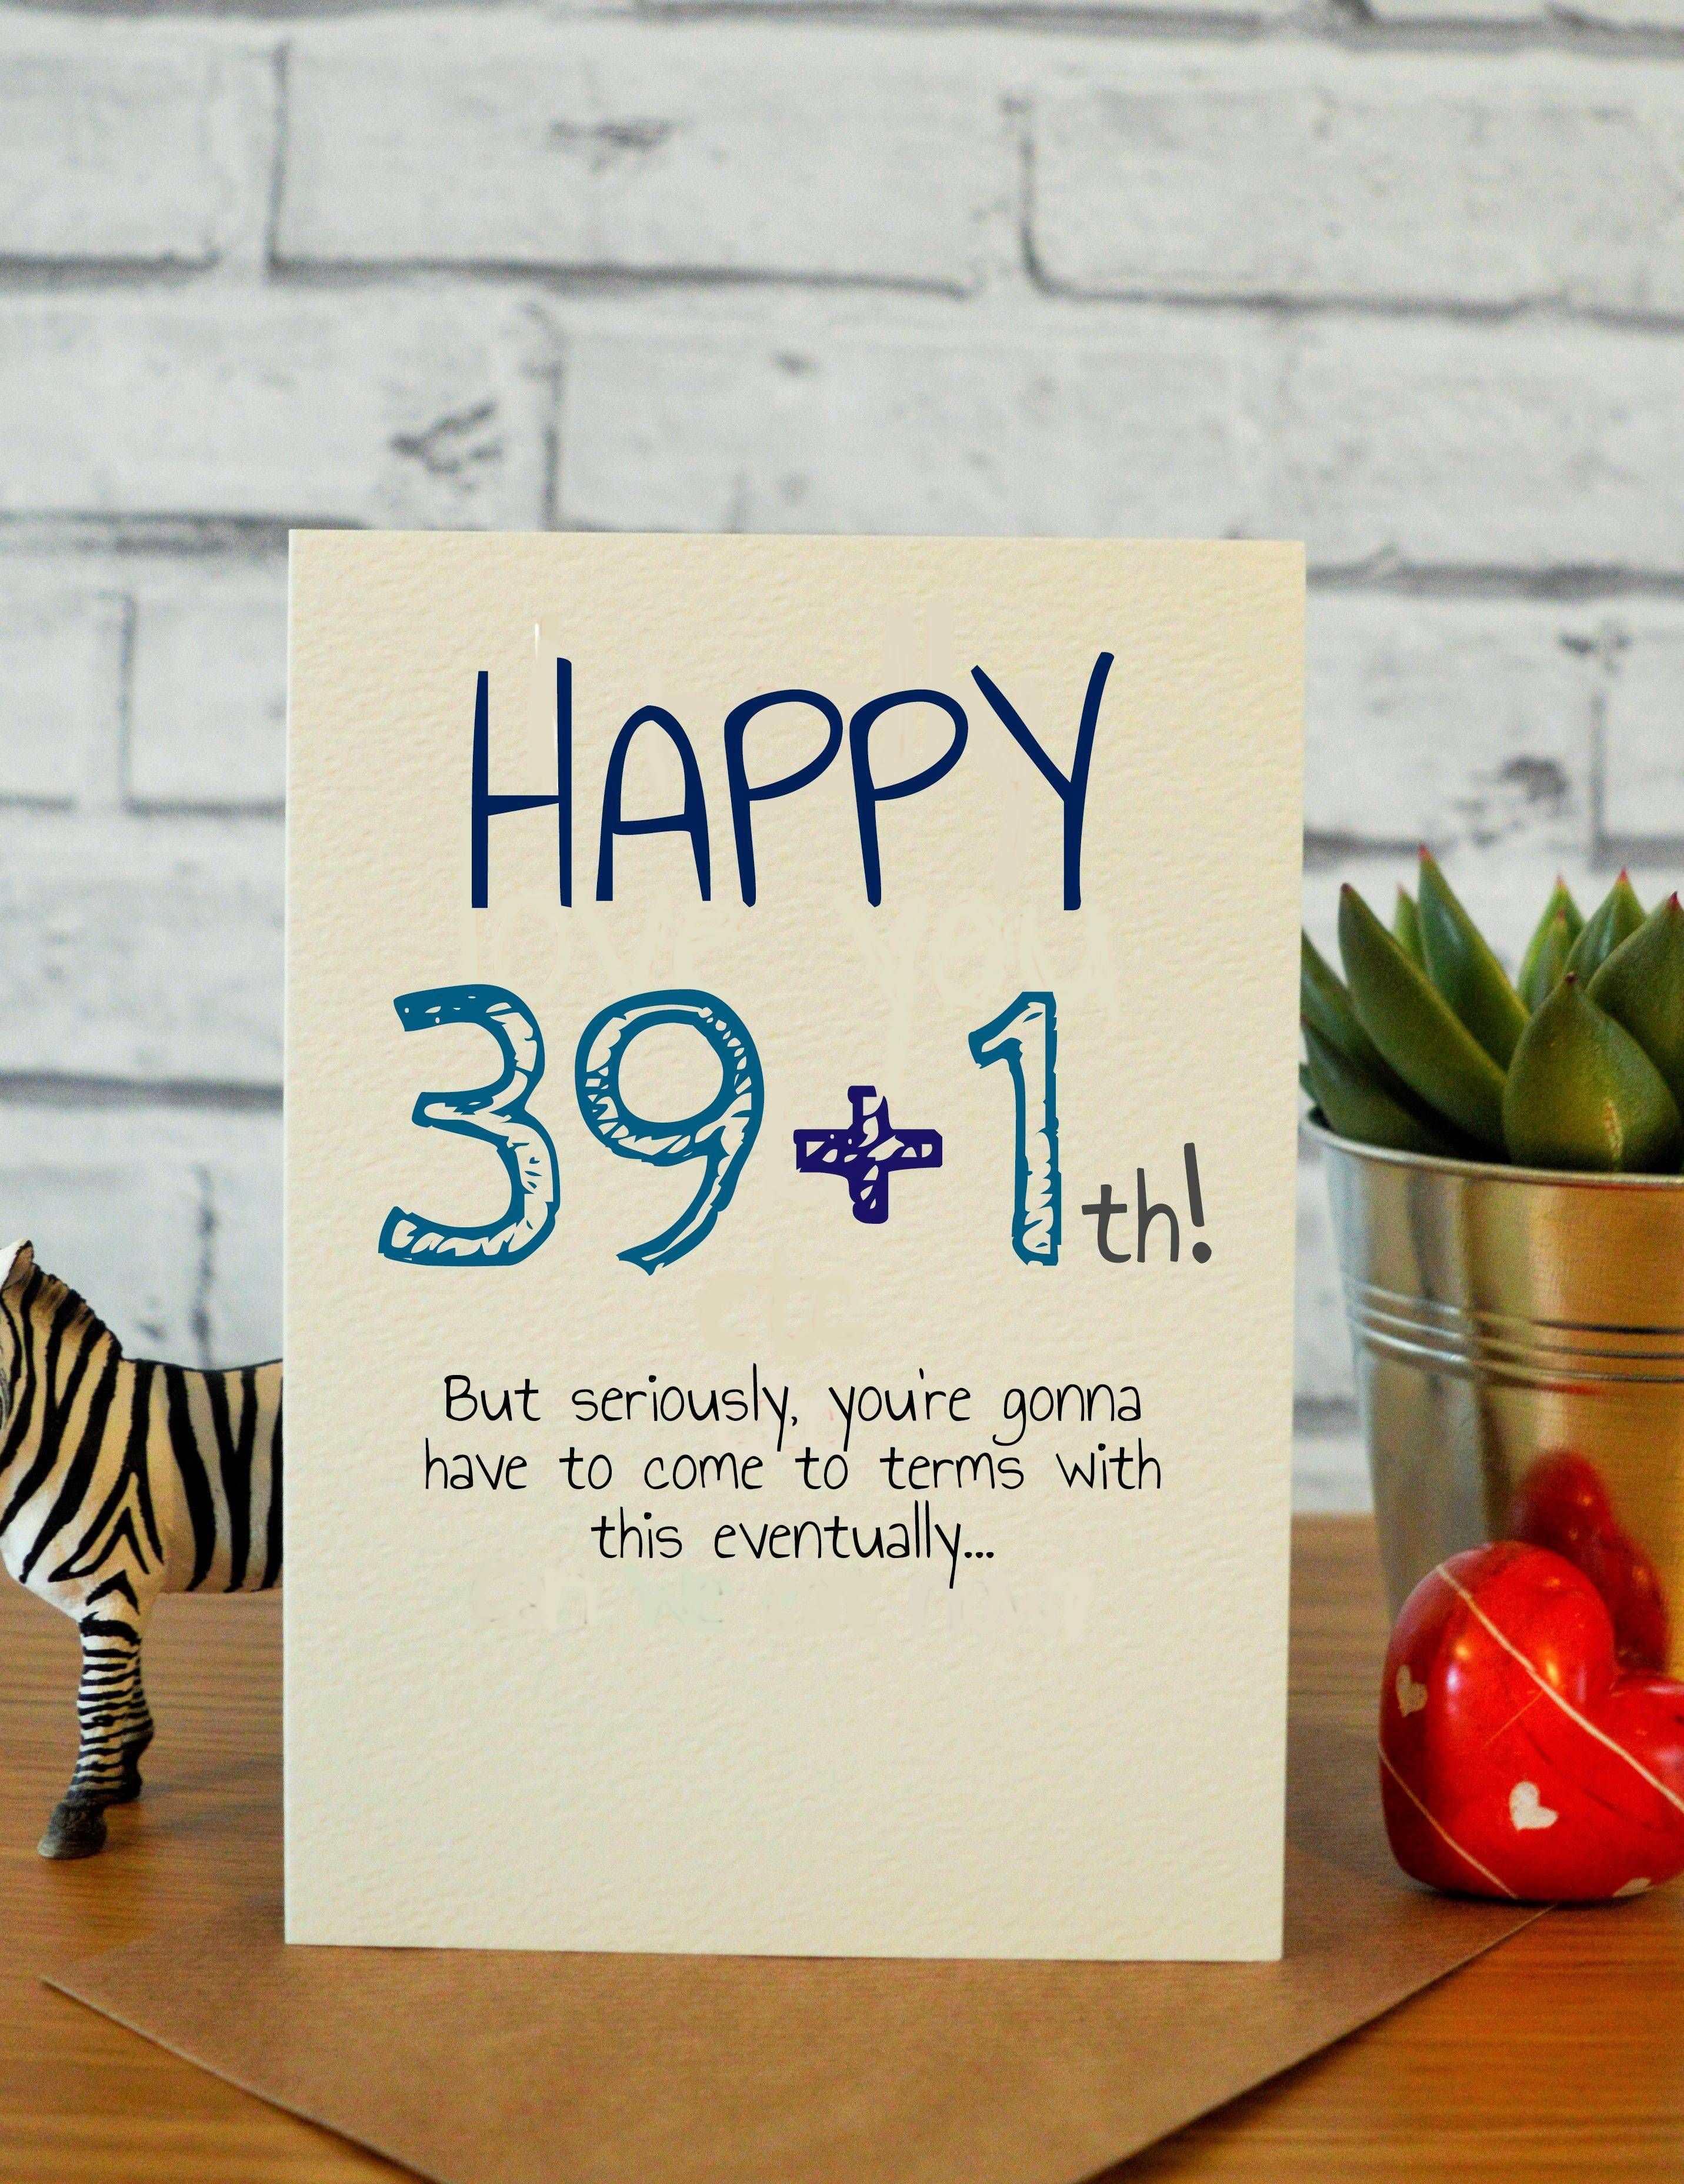 39 1th From Creative 40th Birthday Gift Ideas Image Source